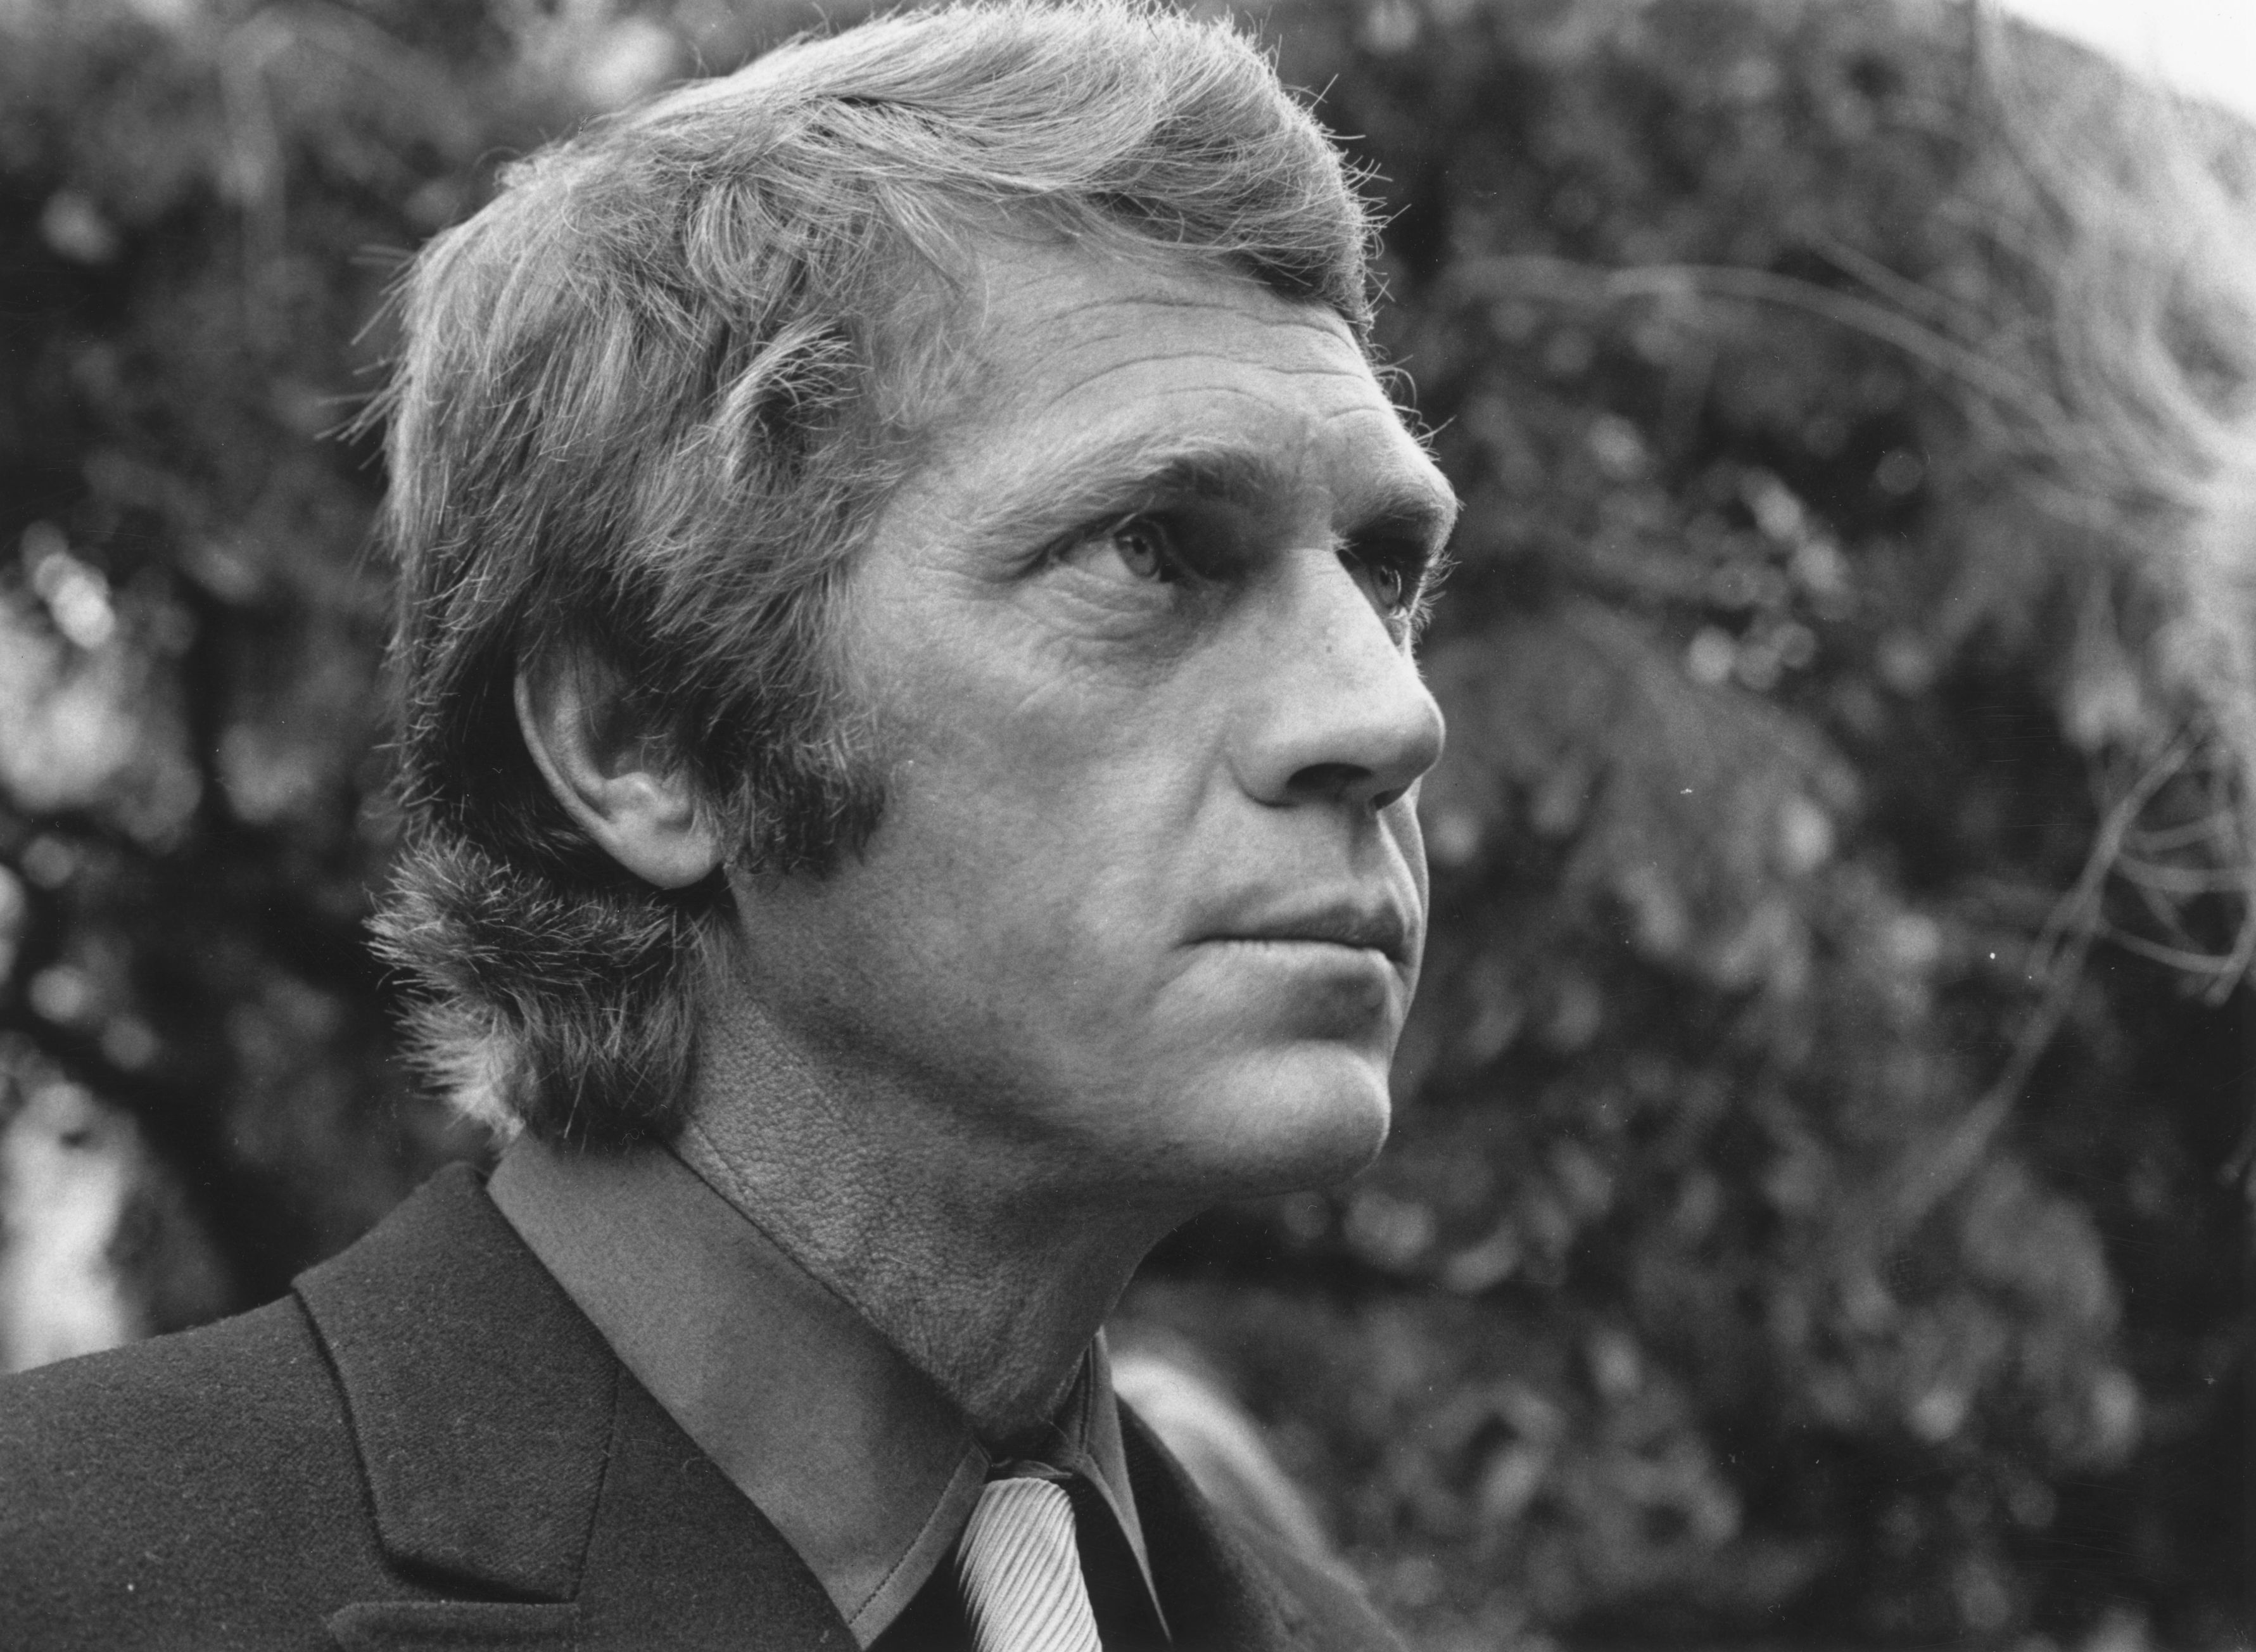 L'acteur Steve McQueen l Source: Getty Images